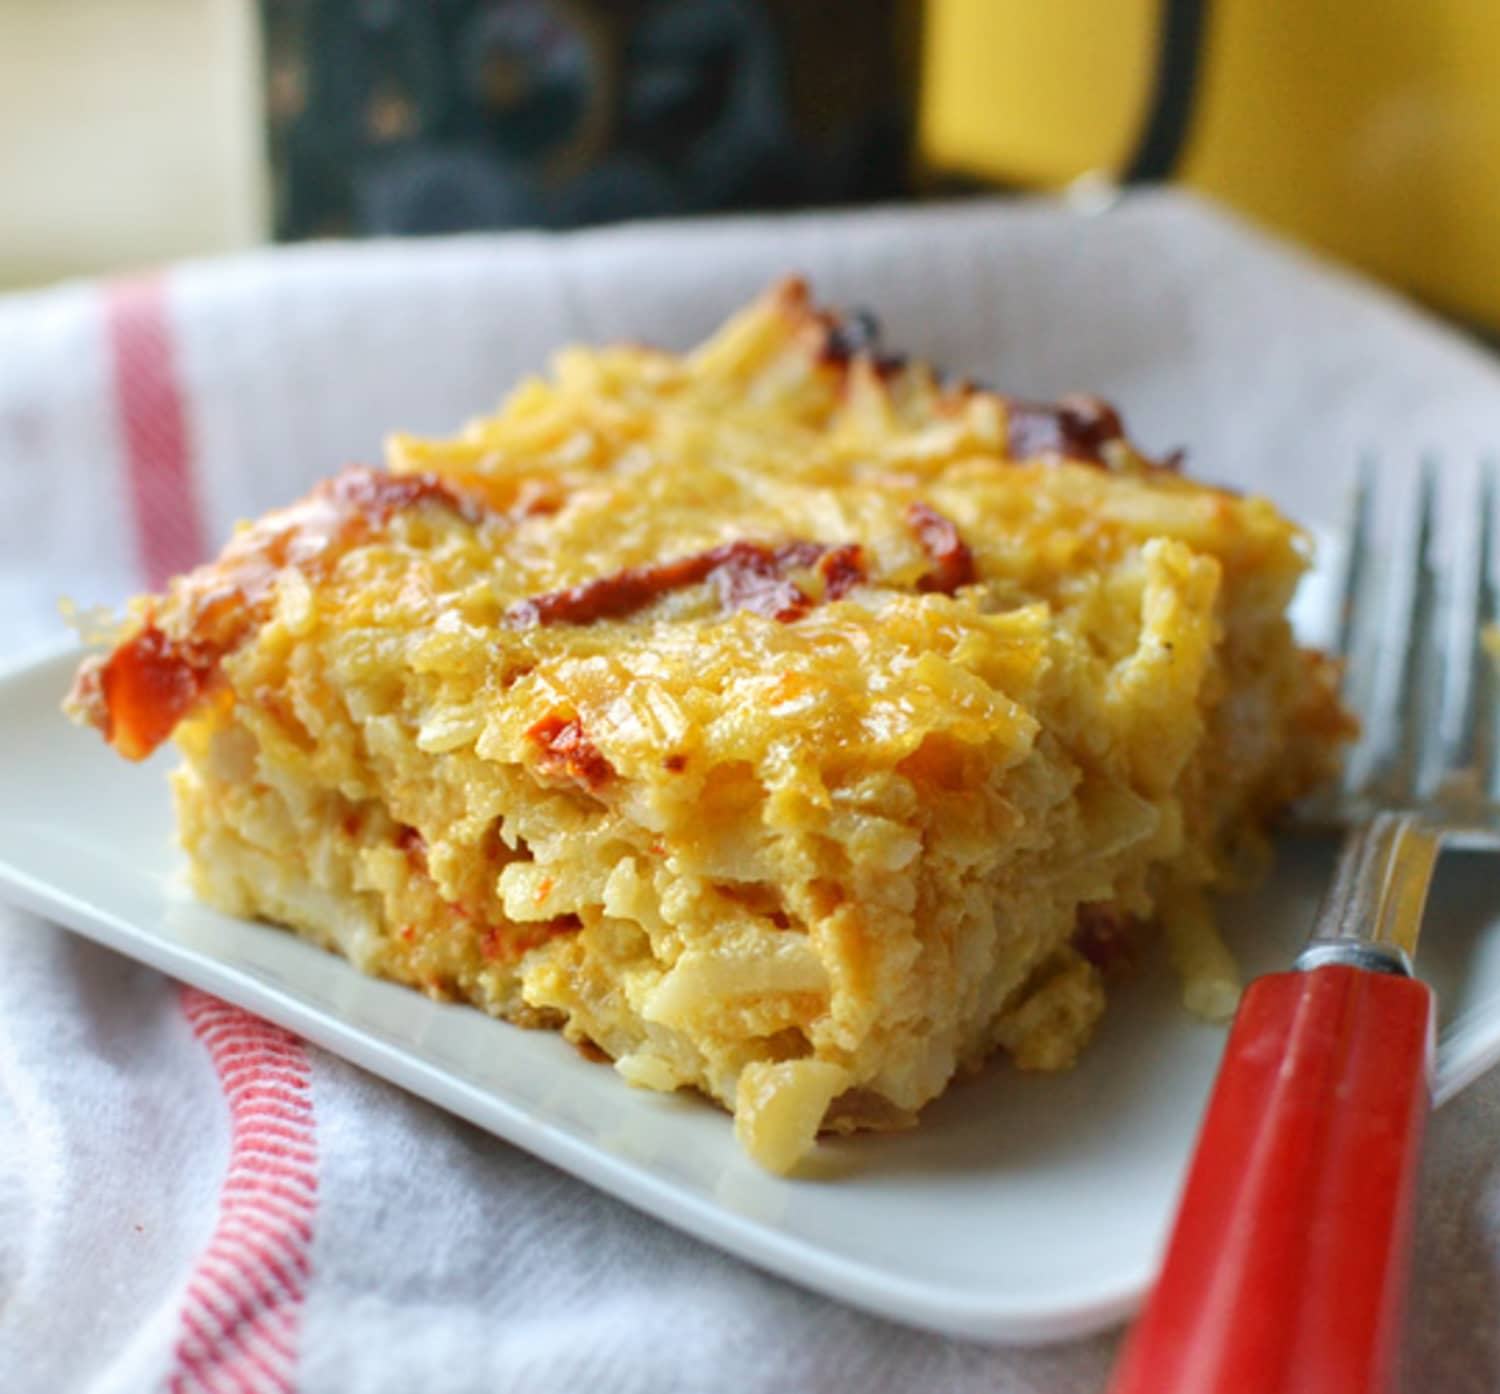 This Cheesy Potato Casserole Is the Purest Expression of My Big Pansexual Heart